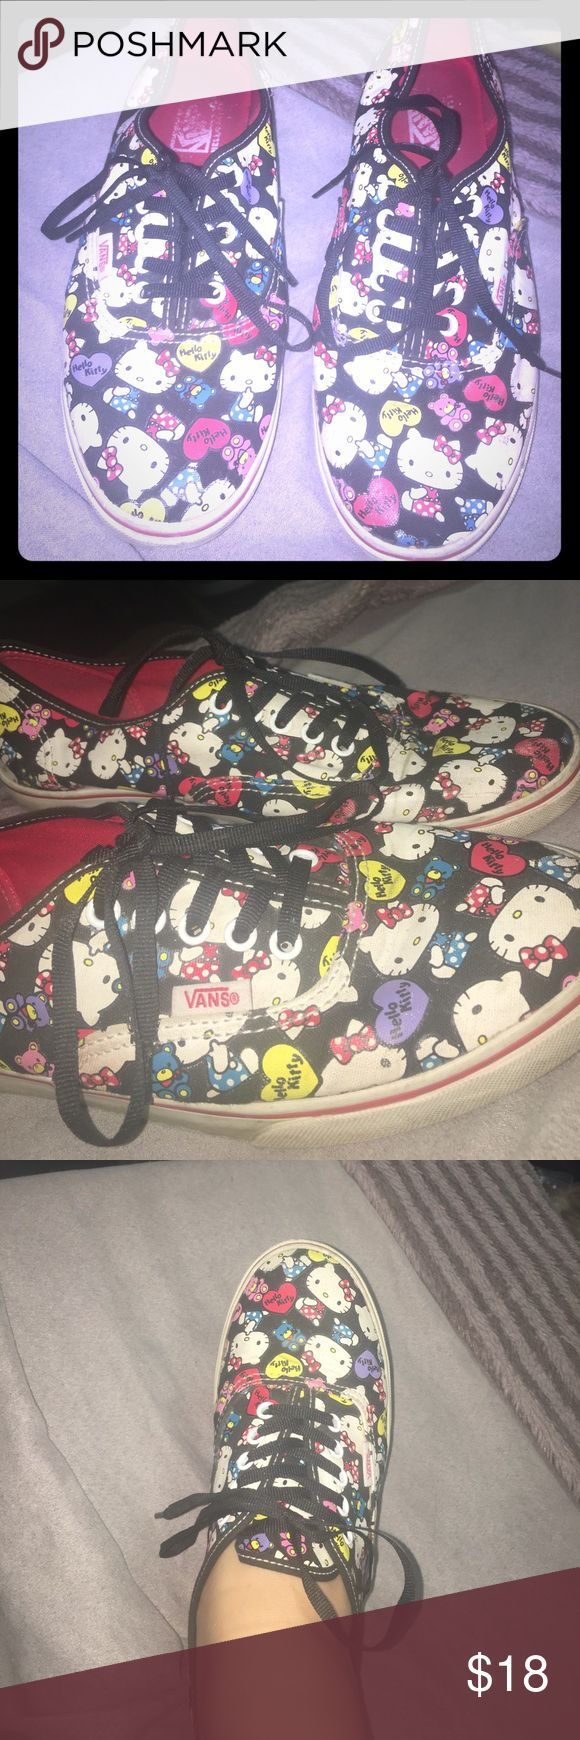 Hello kitty vans Size 9 women's hello kitty vans Vans Shoes Sneakers